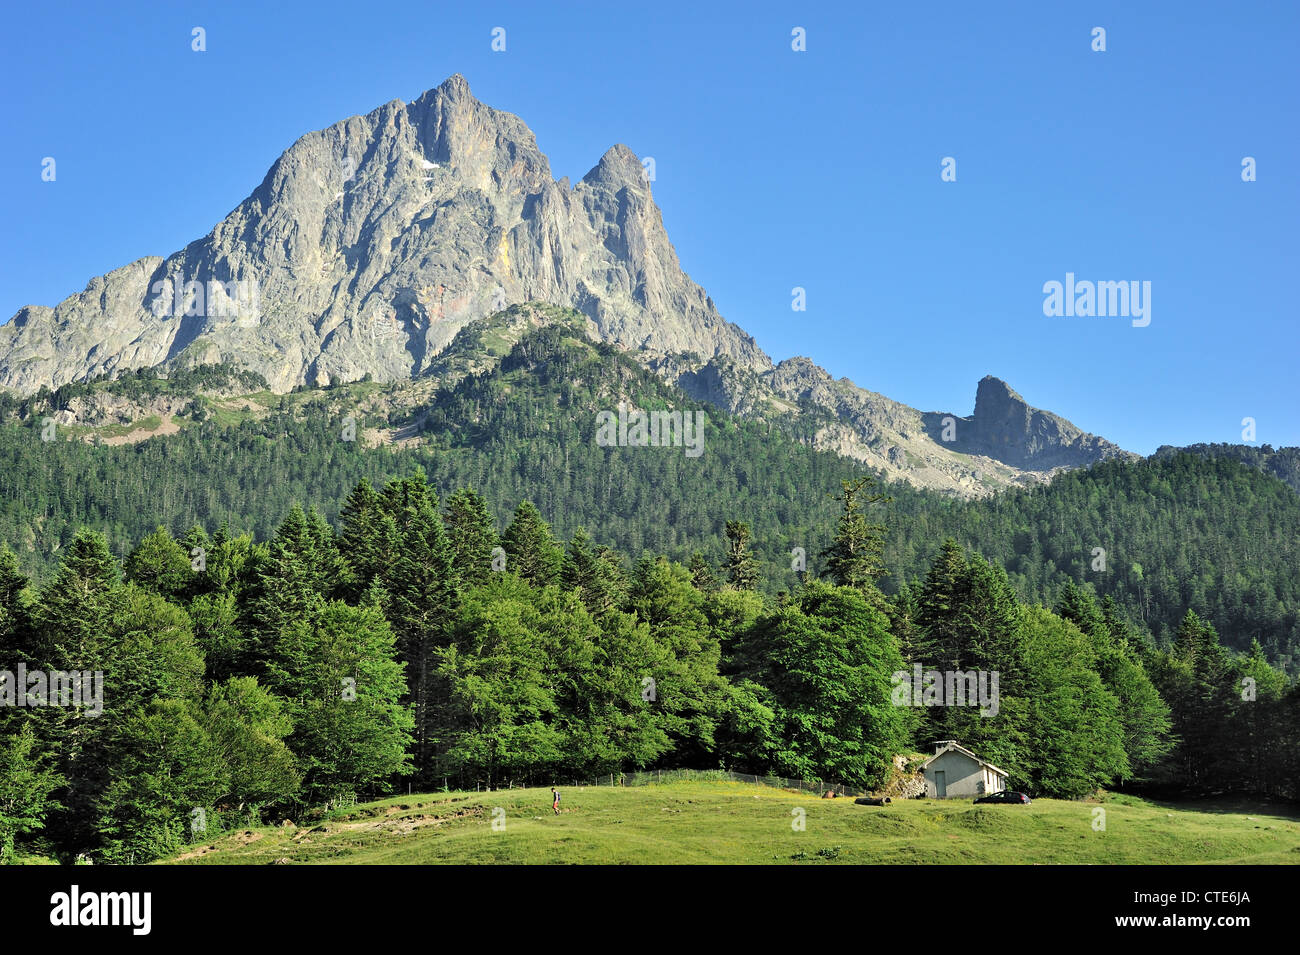 Pine forest and the Pic du Midi d'Ossau (2884 m), a mountain in the Pyrénées-Atlantiques, Pyrenees, - Stock Image